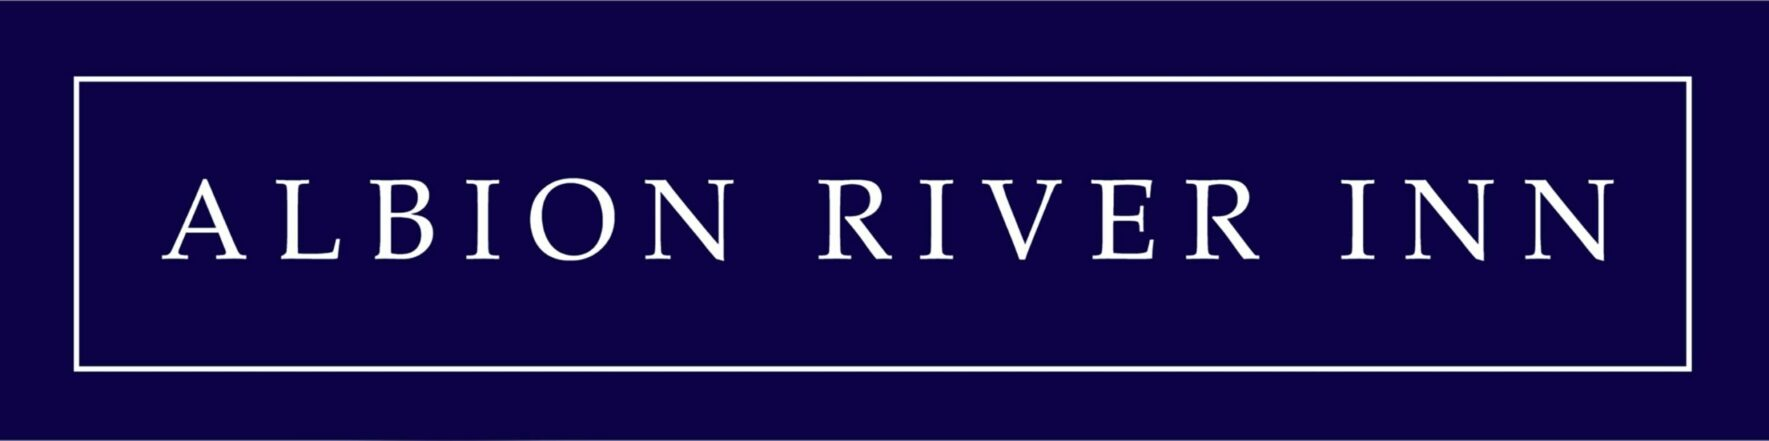 About Your Stay, Albion River Inn